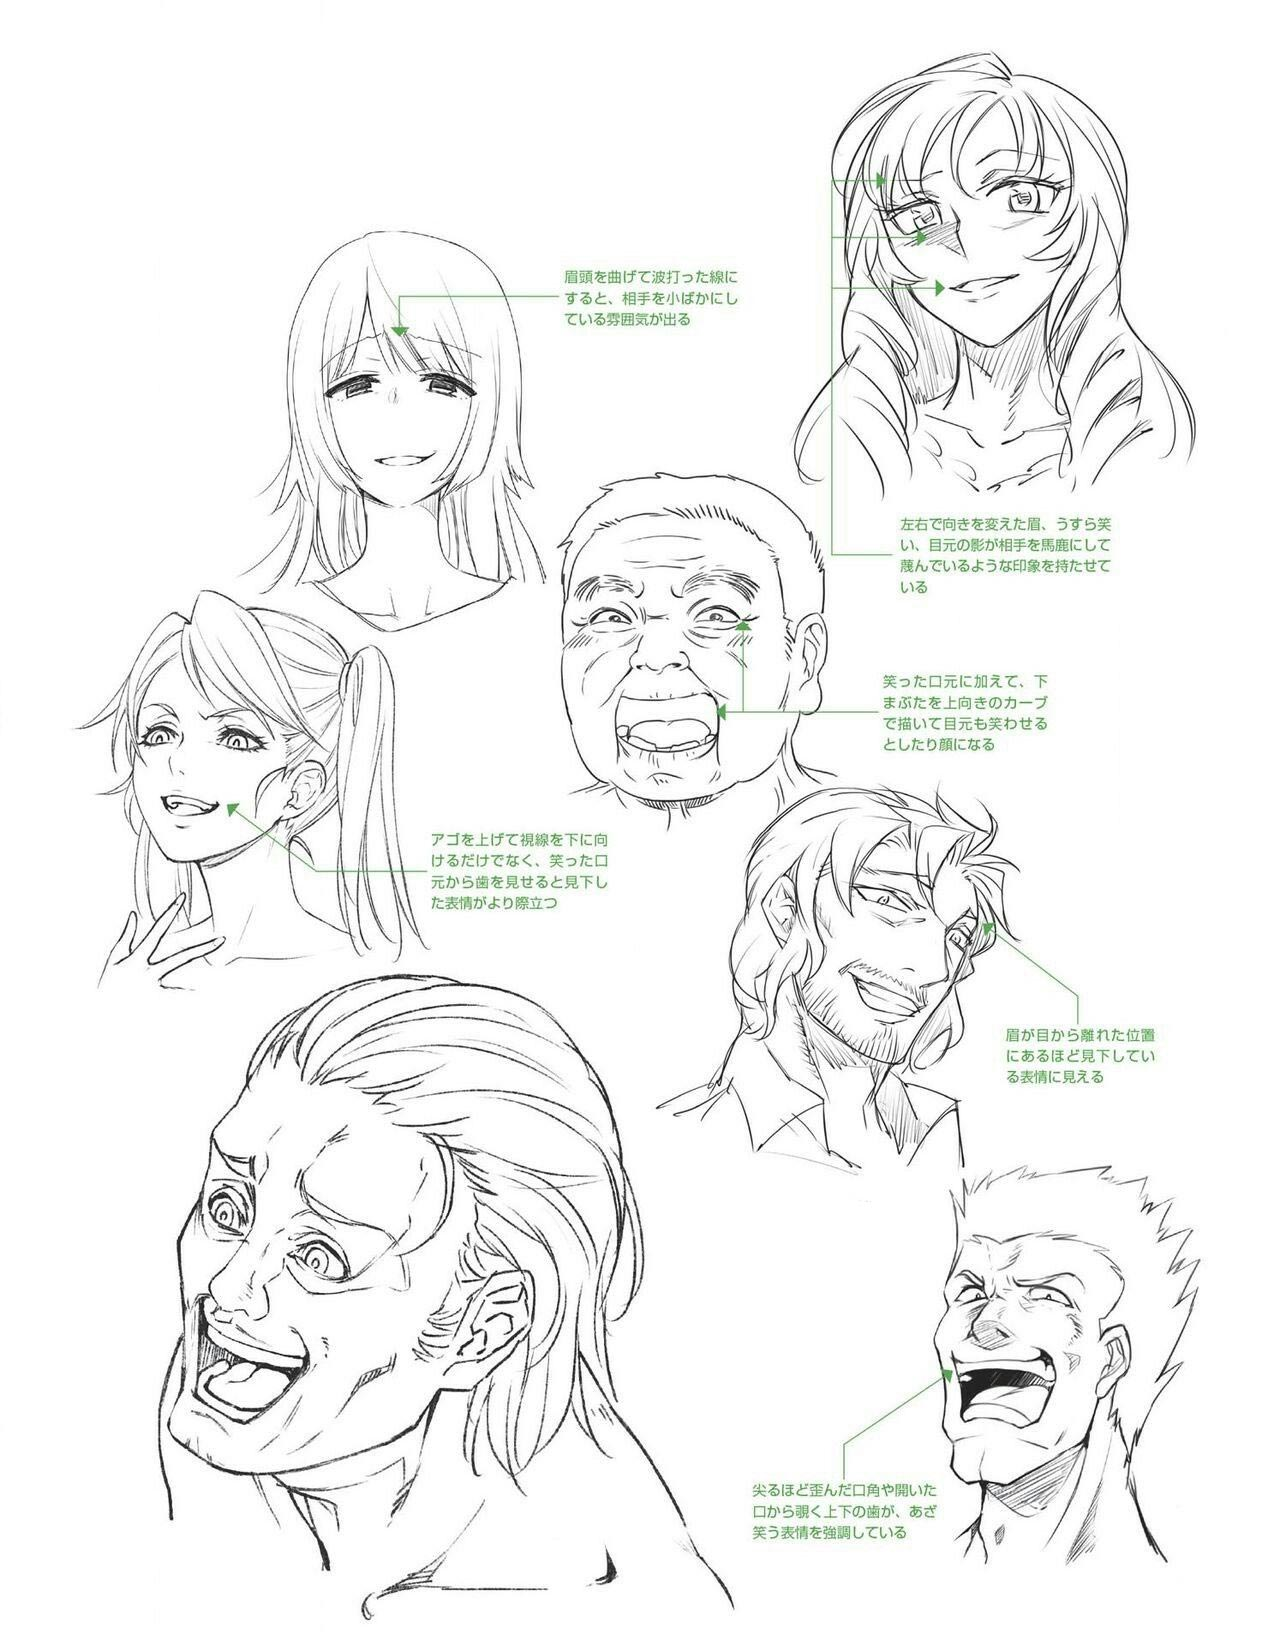 Laughing and Smiling drawing reference